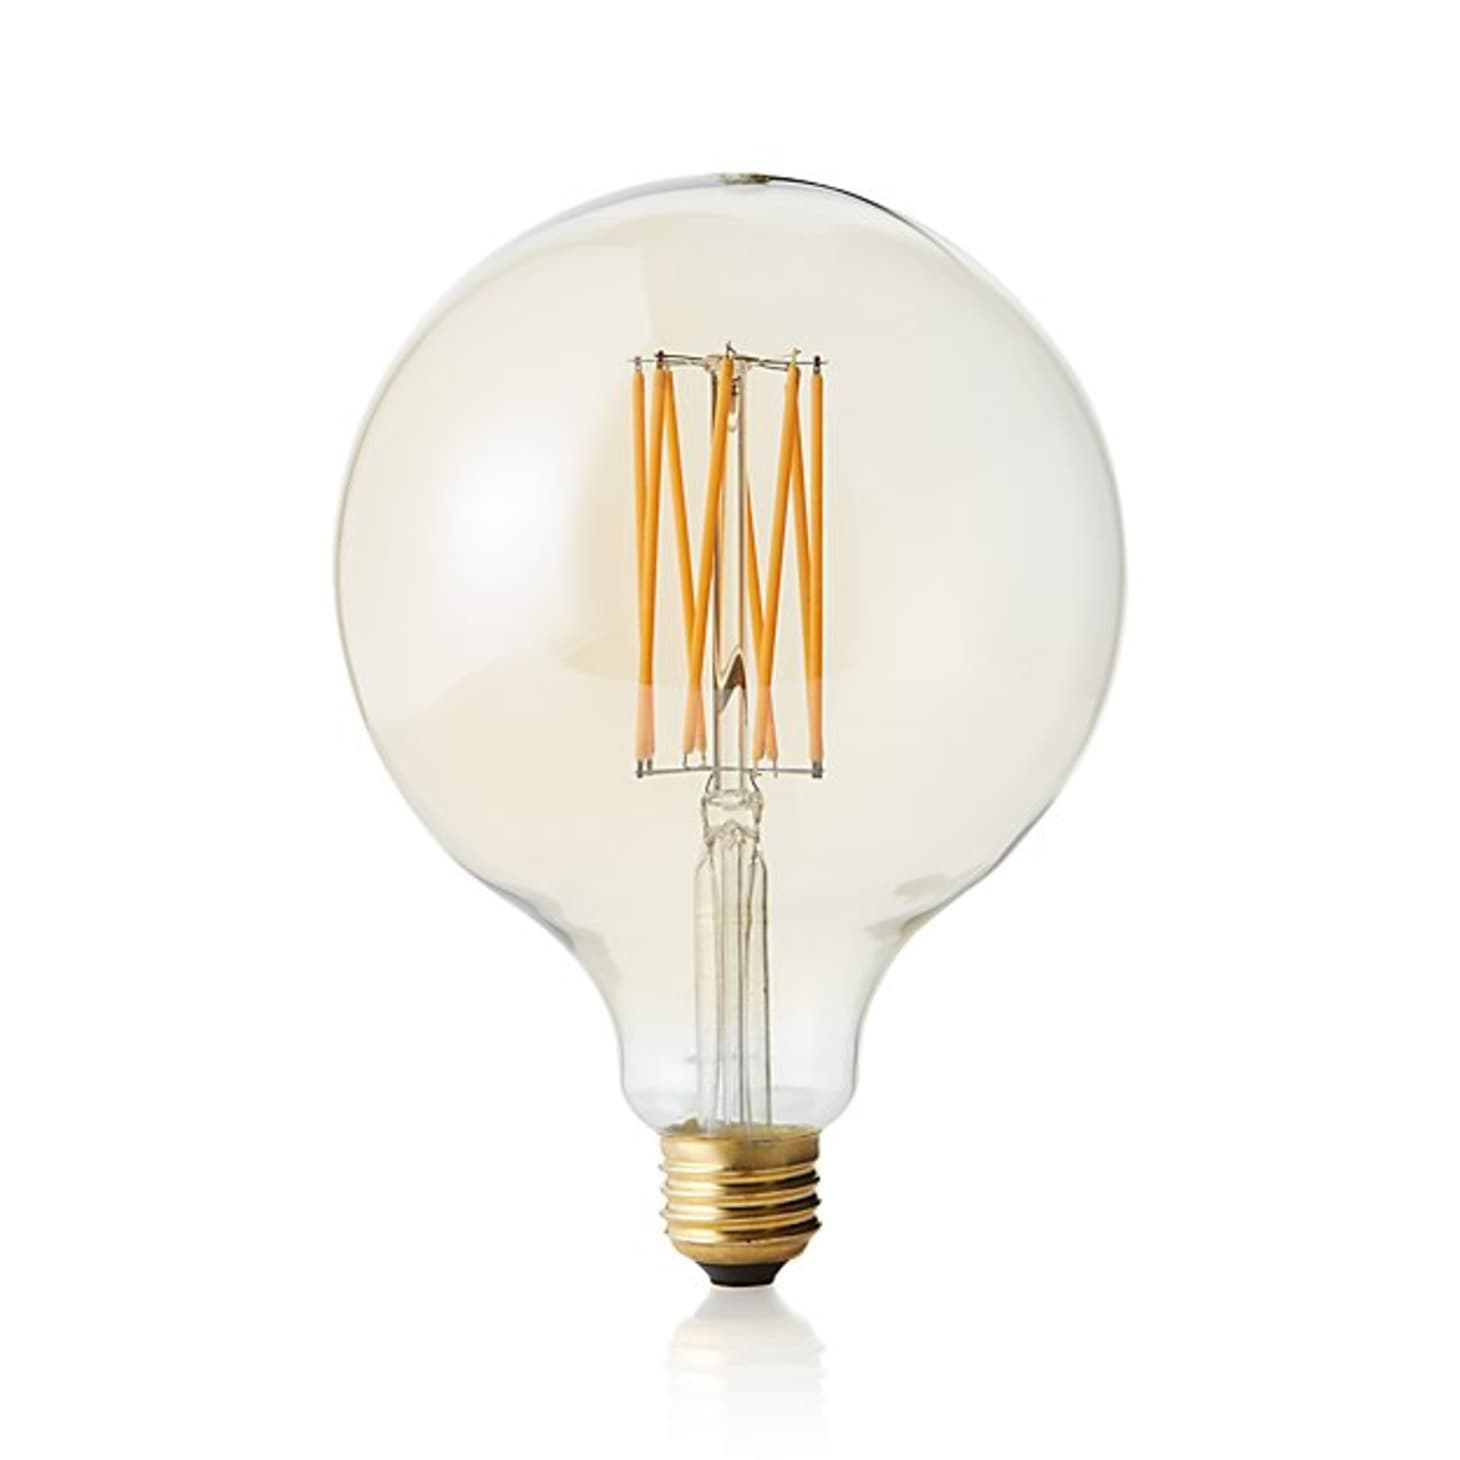 Best Light Bulbs According To The Pros Kitchn